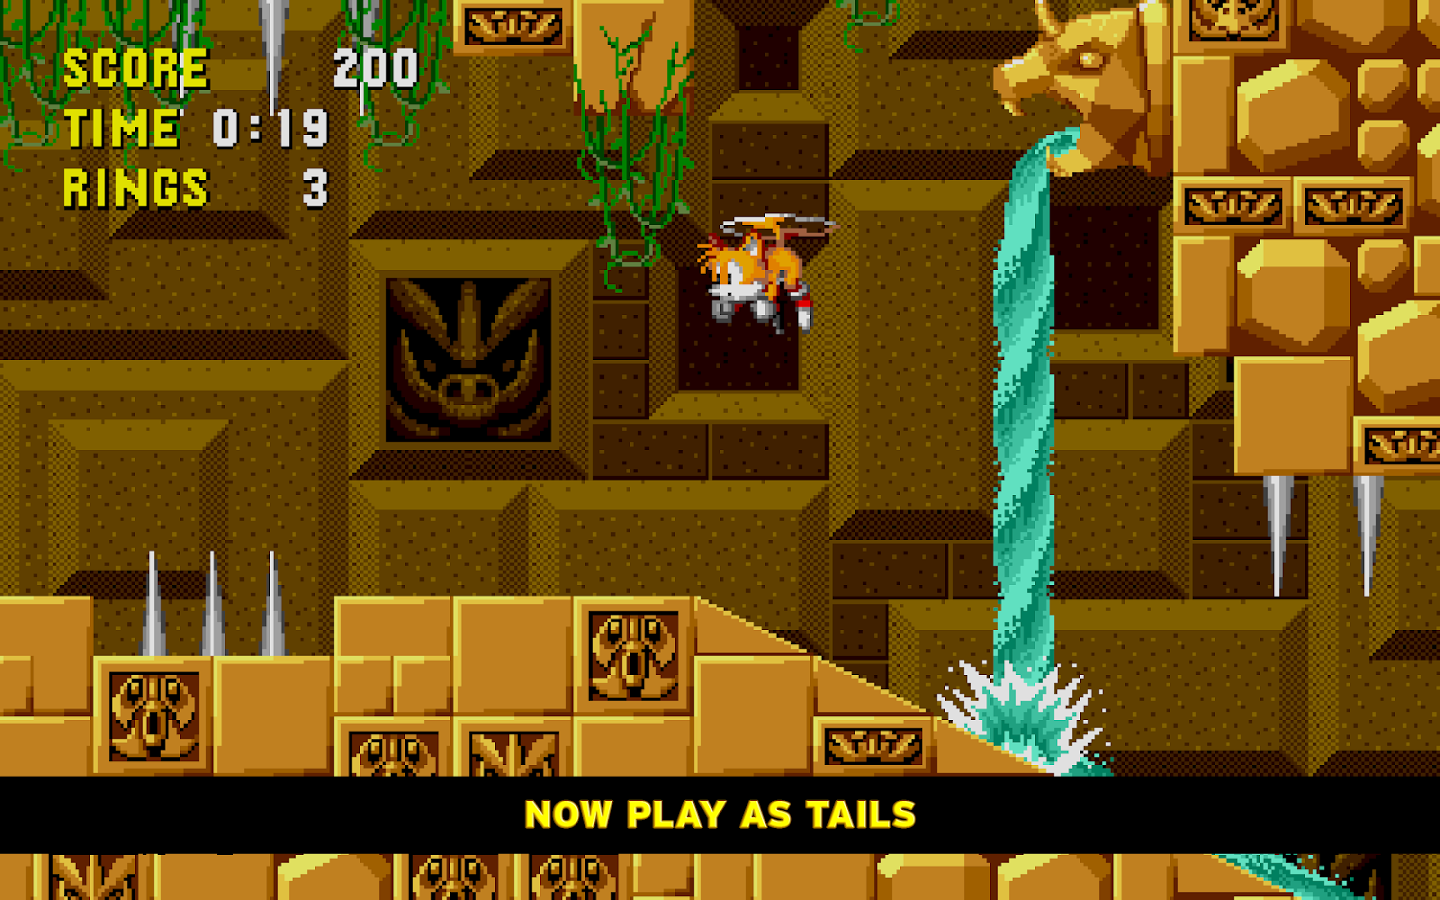 Sonic The Hedgehog Screenshot 8